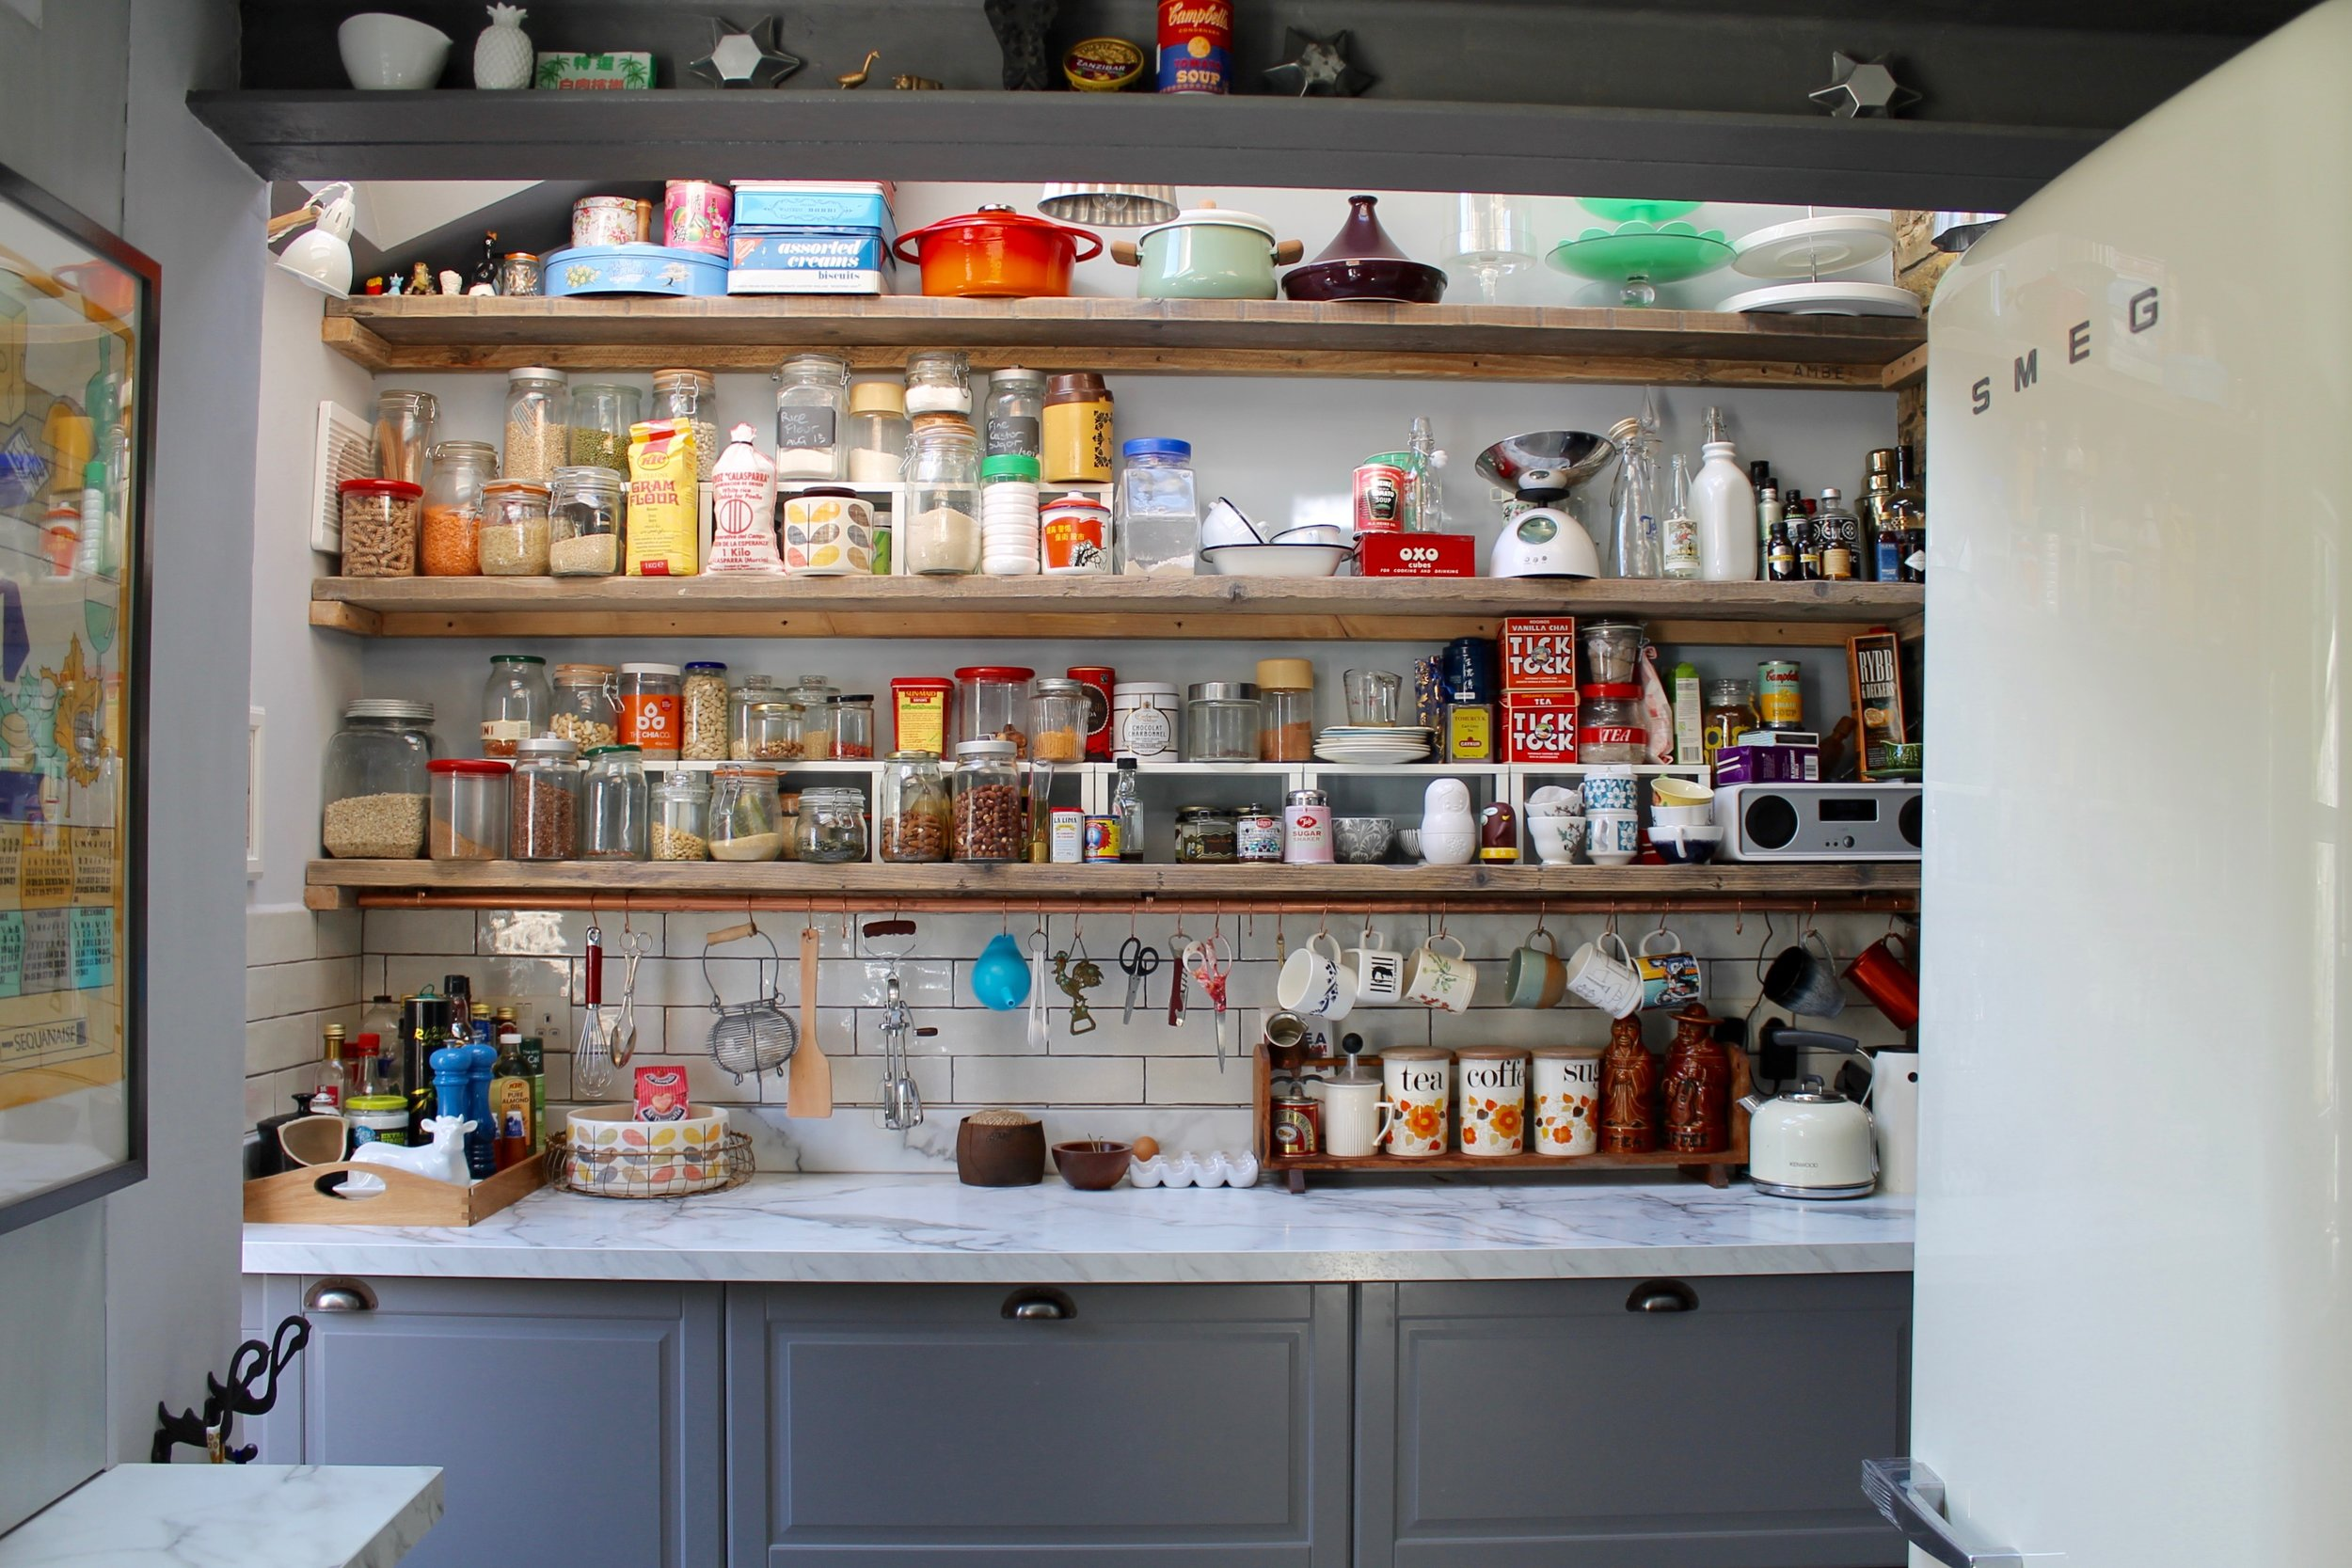 Photography provided by Joanna Thornhill - New kitchen extension integrates   into the period style of the house by bringing in warmth with old scaffold boards as shelving, a copper hanging rail and vintage styling as well as leaving some of the old brick and beams exposed